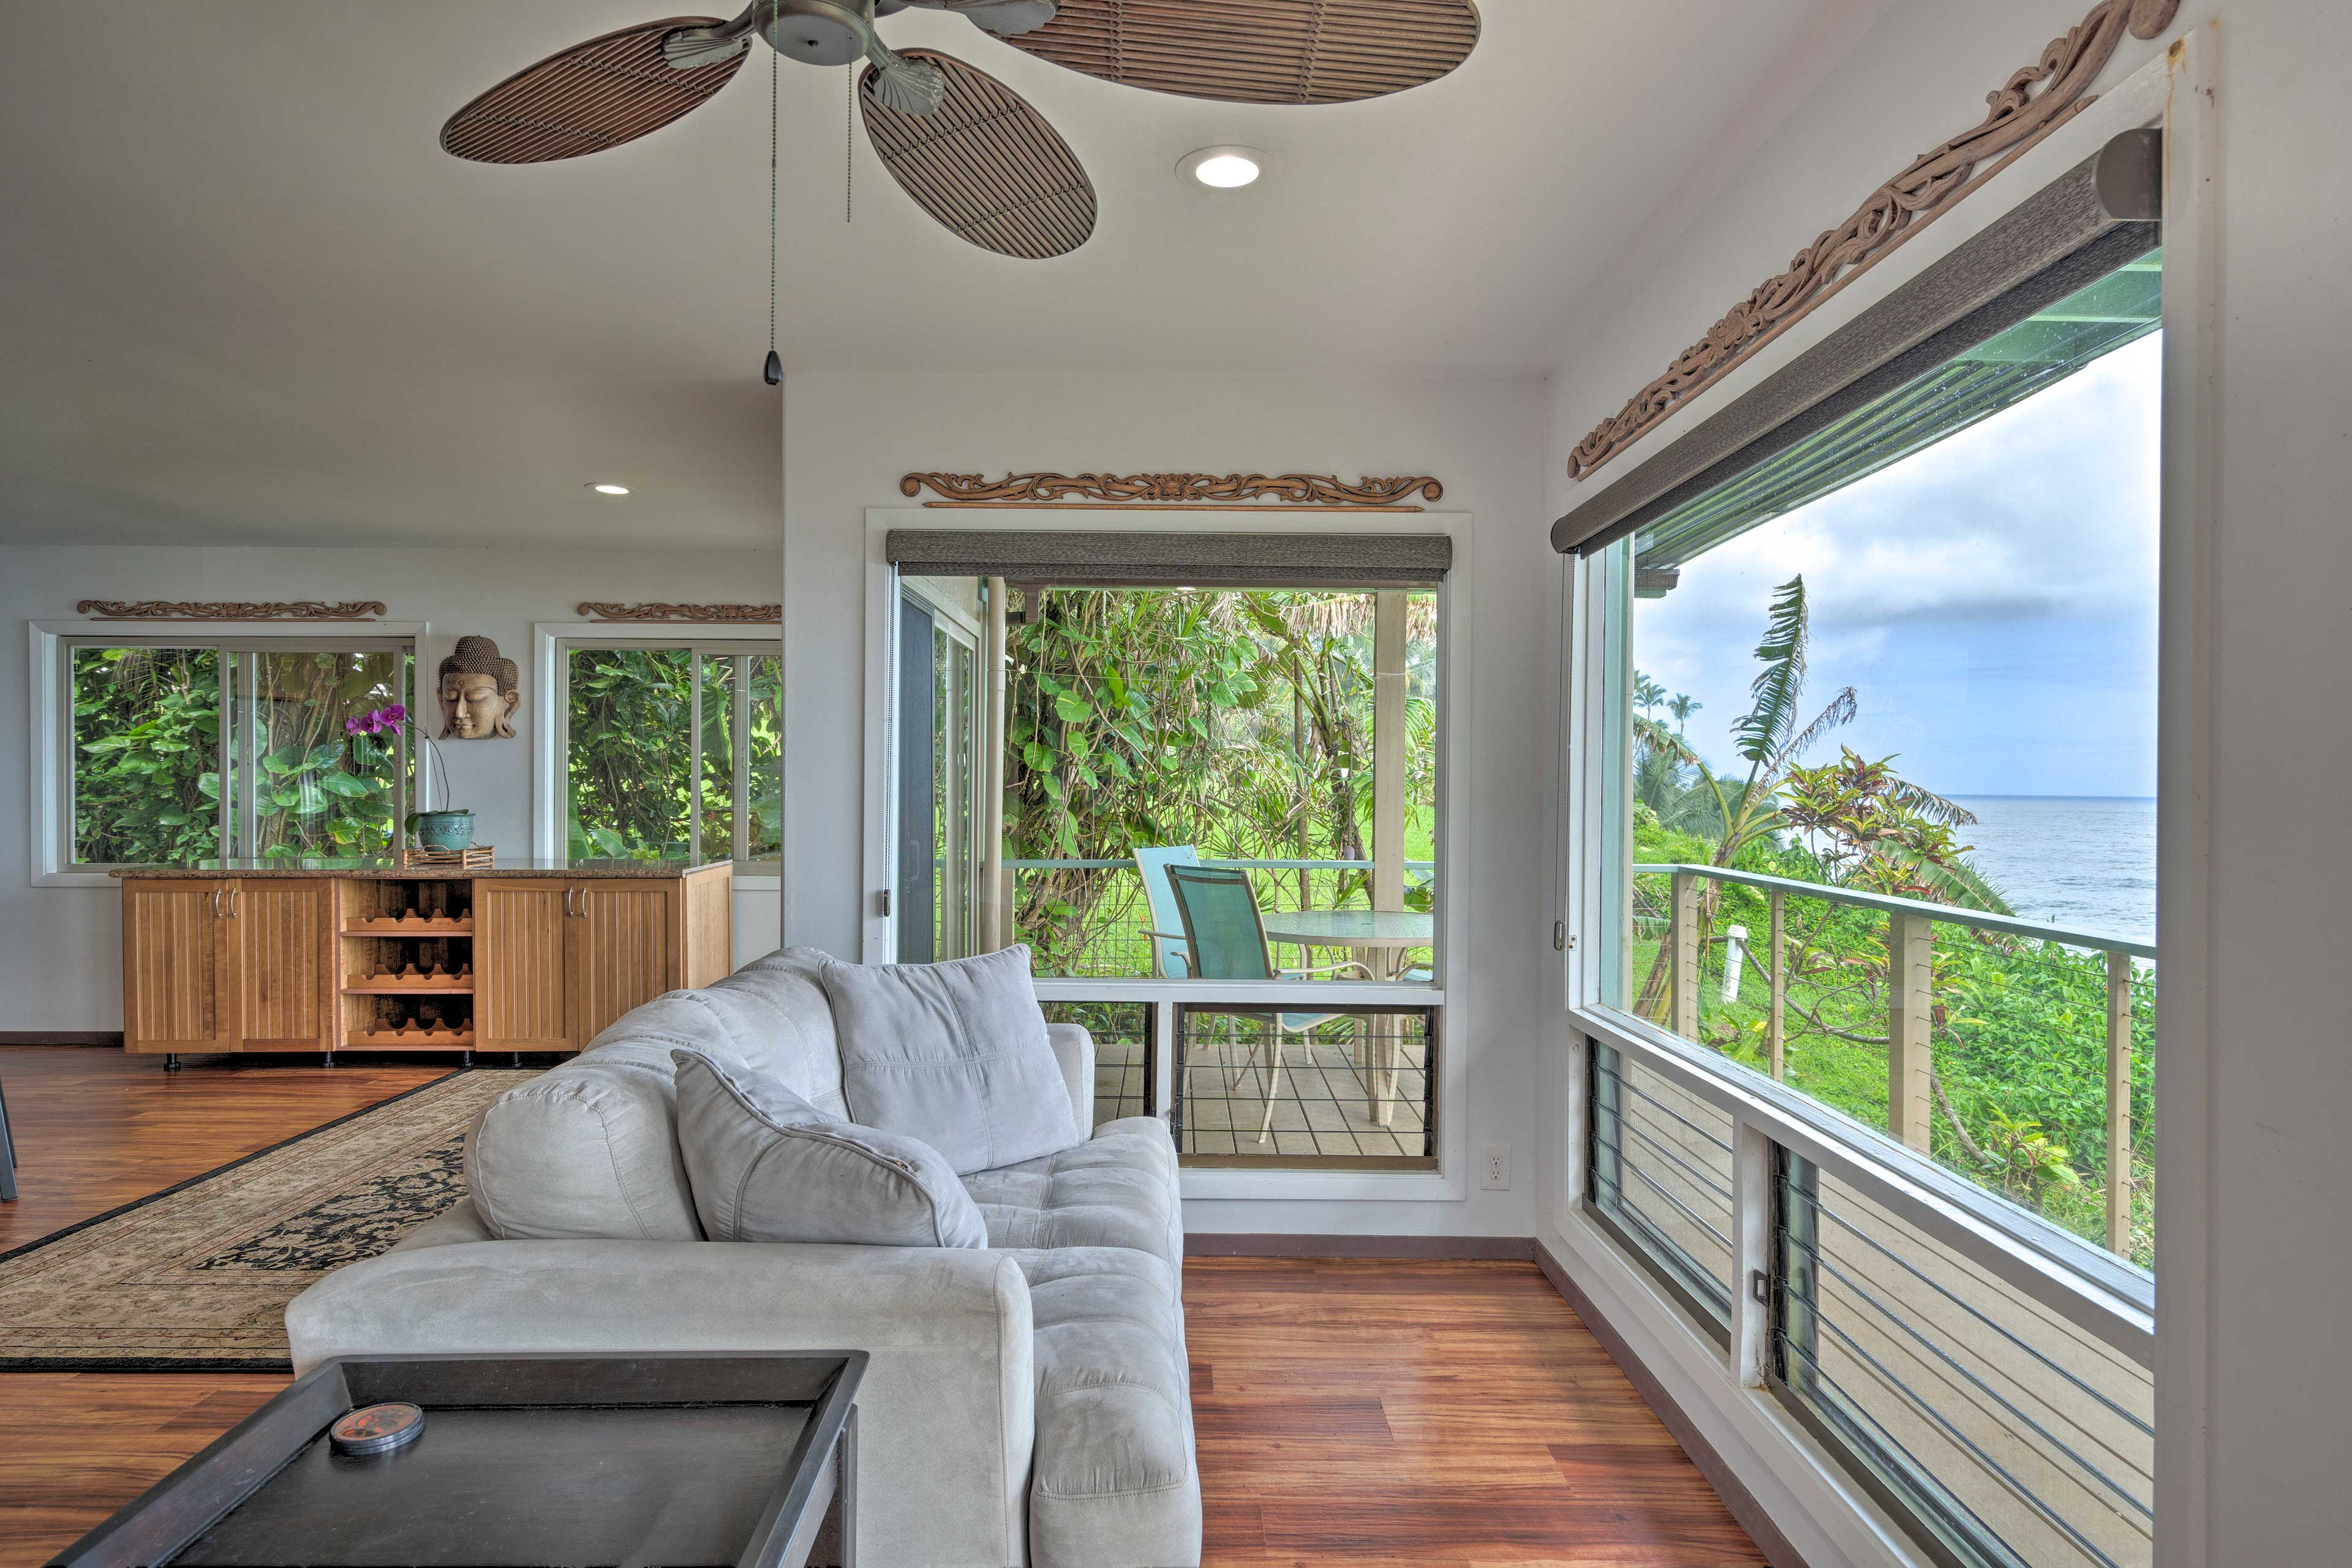 Enjoy an after dinner coffee on this sofa while looking out at the water.